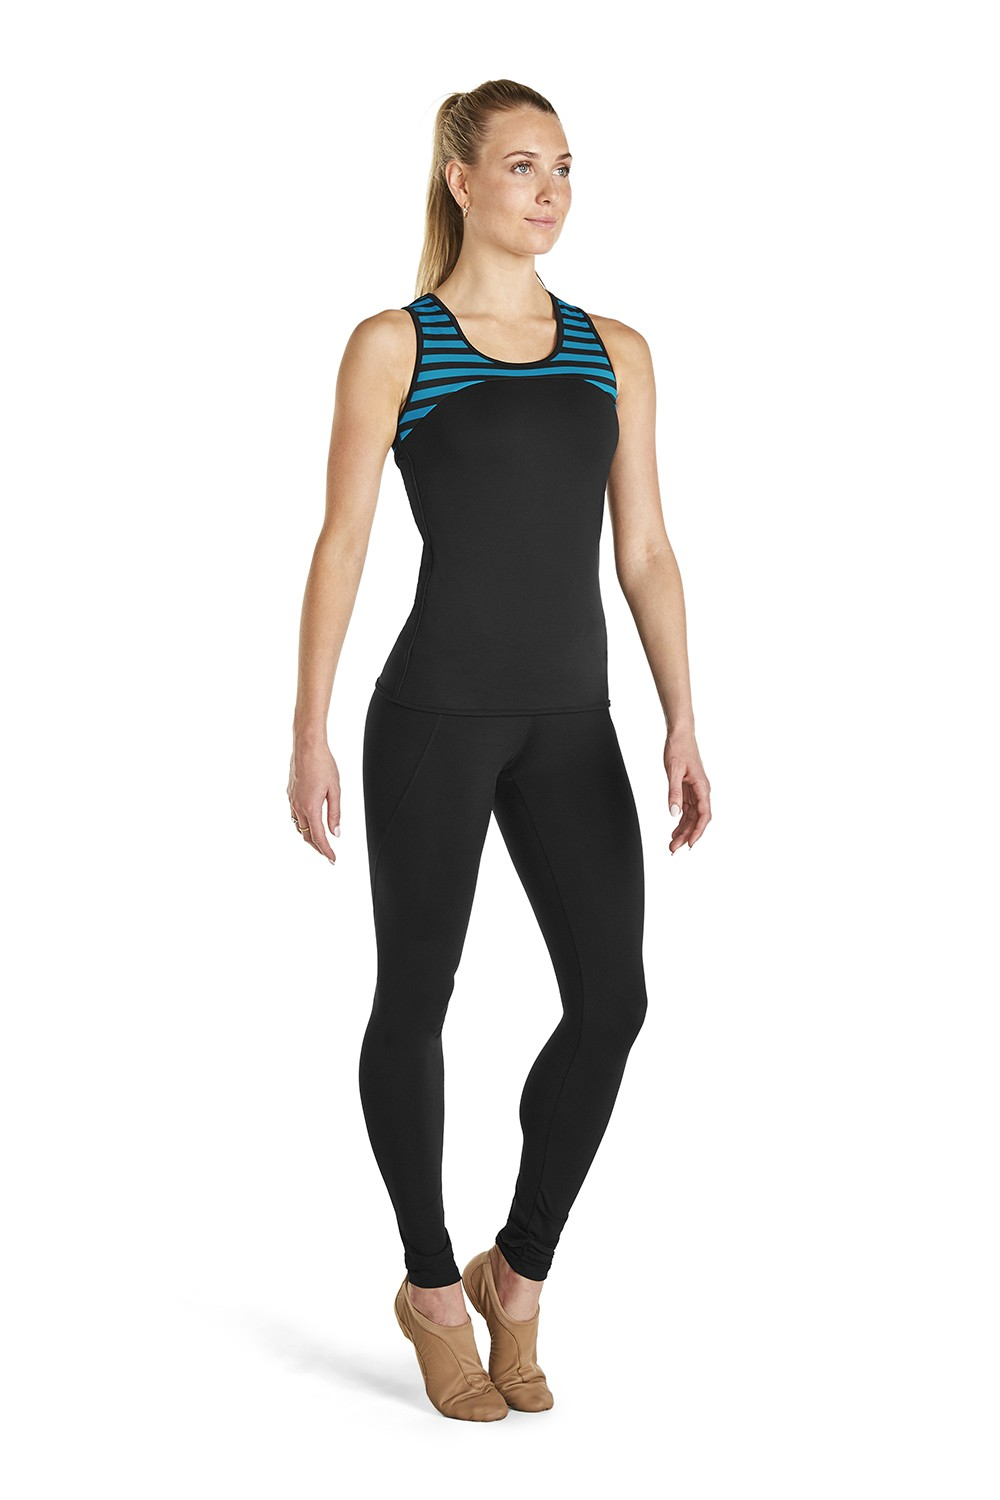 Stripe Active Top Women's Tops